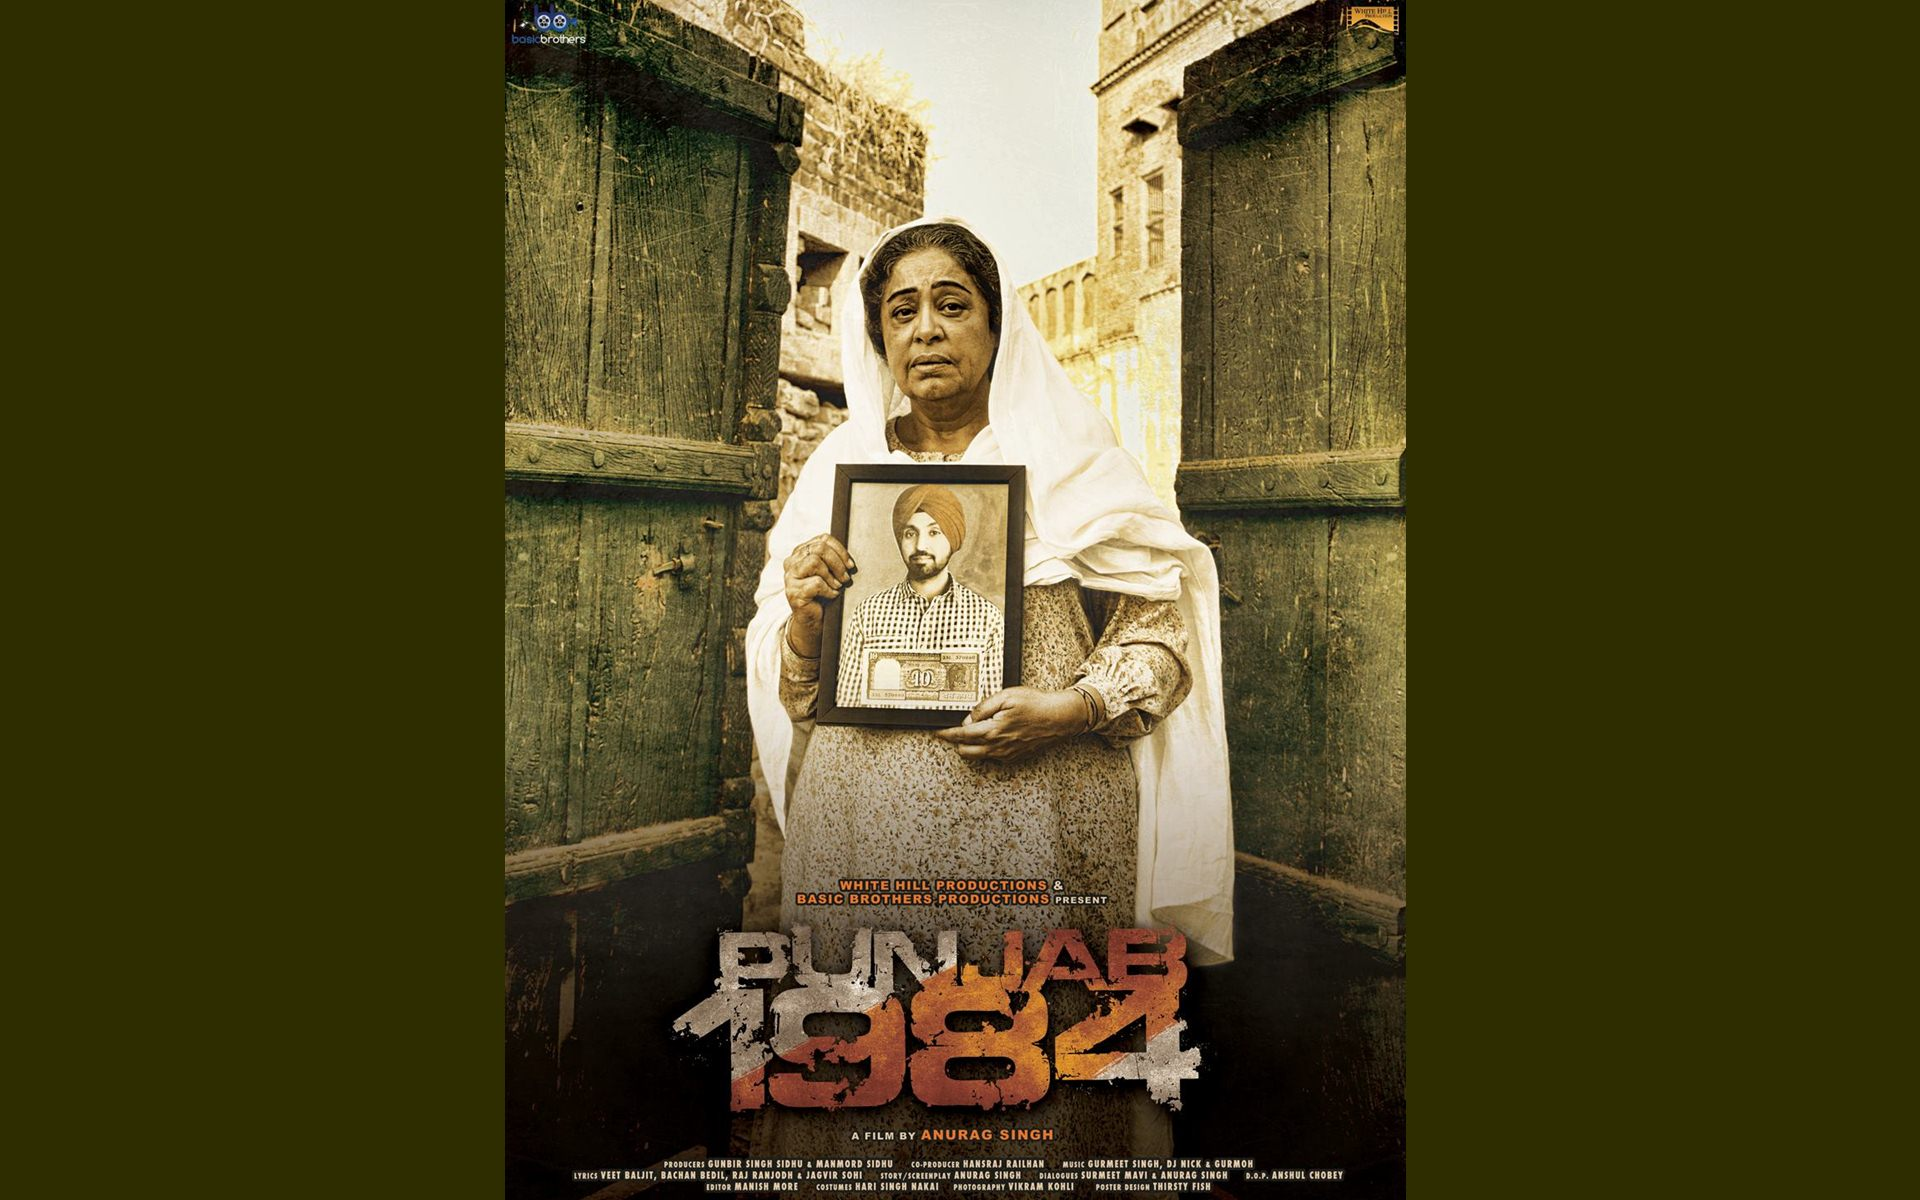 Punjab 1984 outstanding, worthy going to Oscars: Anupam Kher